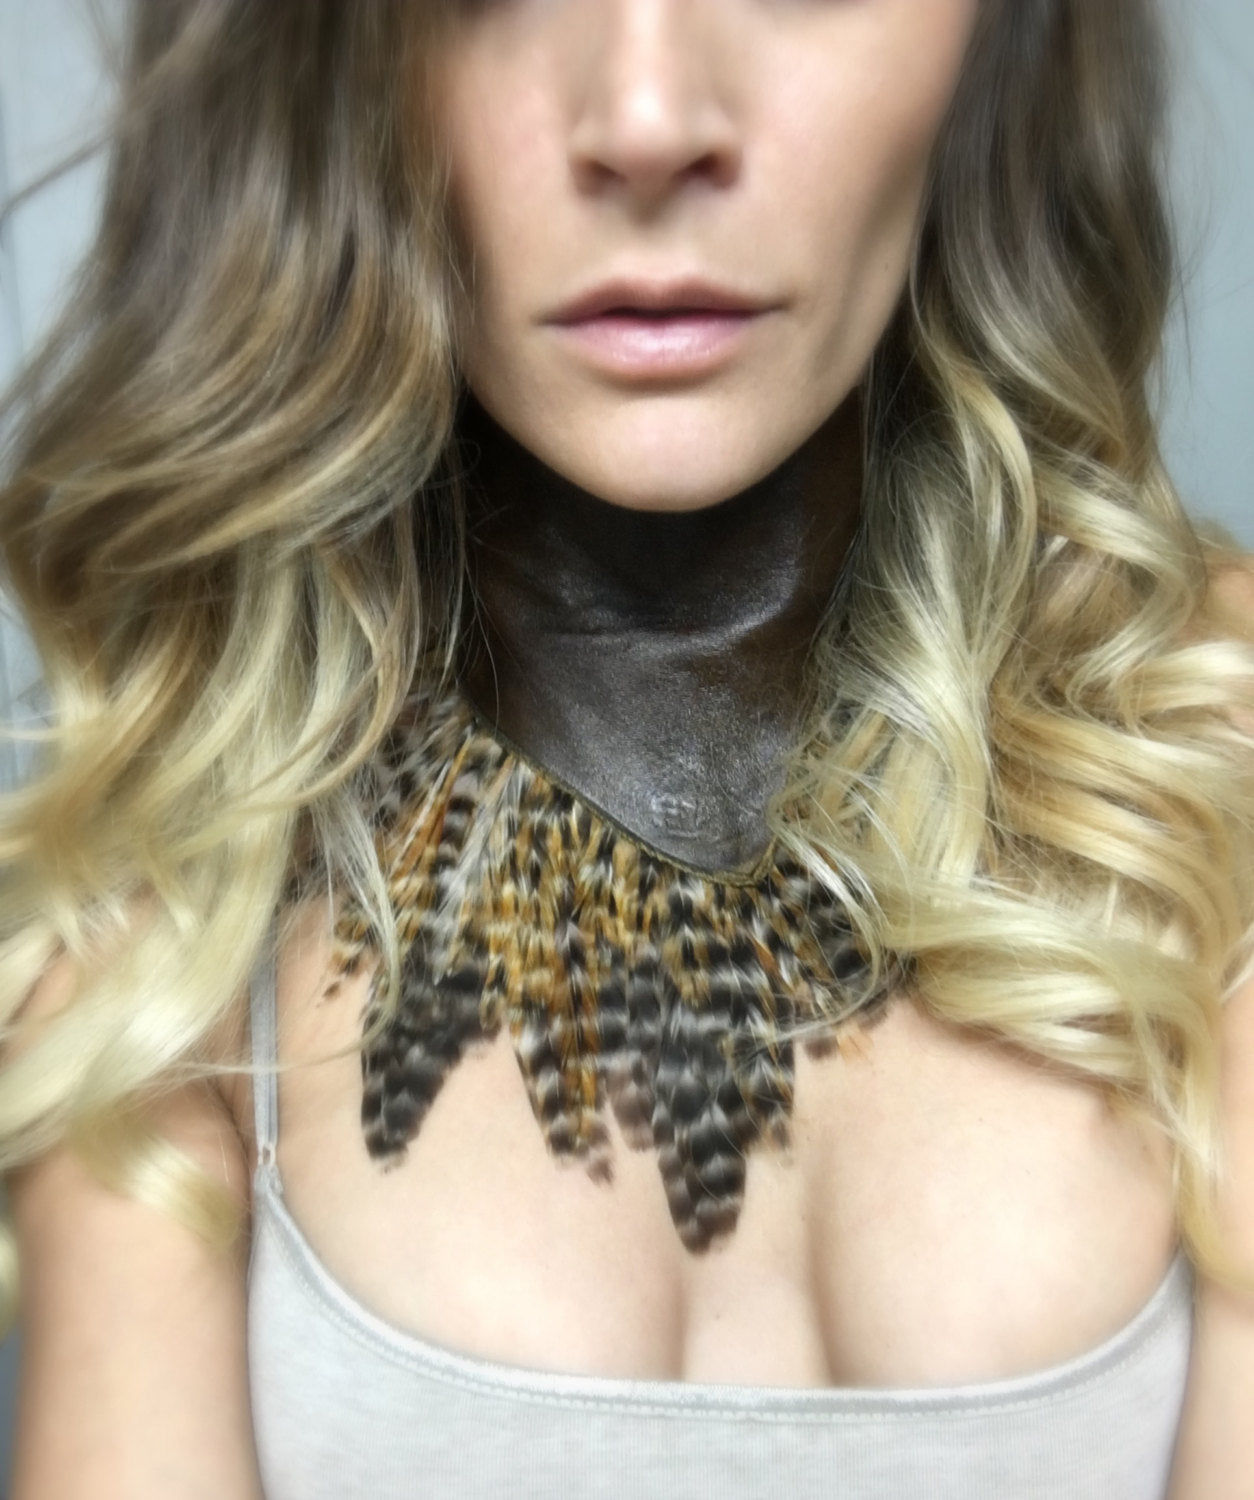 Feather Torn Leather Choker - burningbabeclothingco